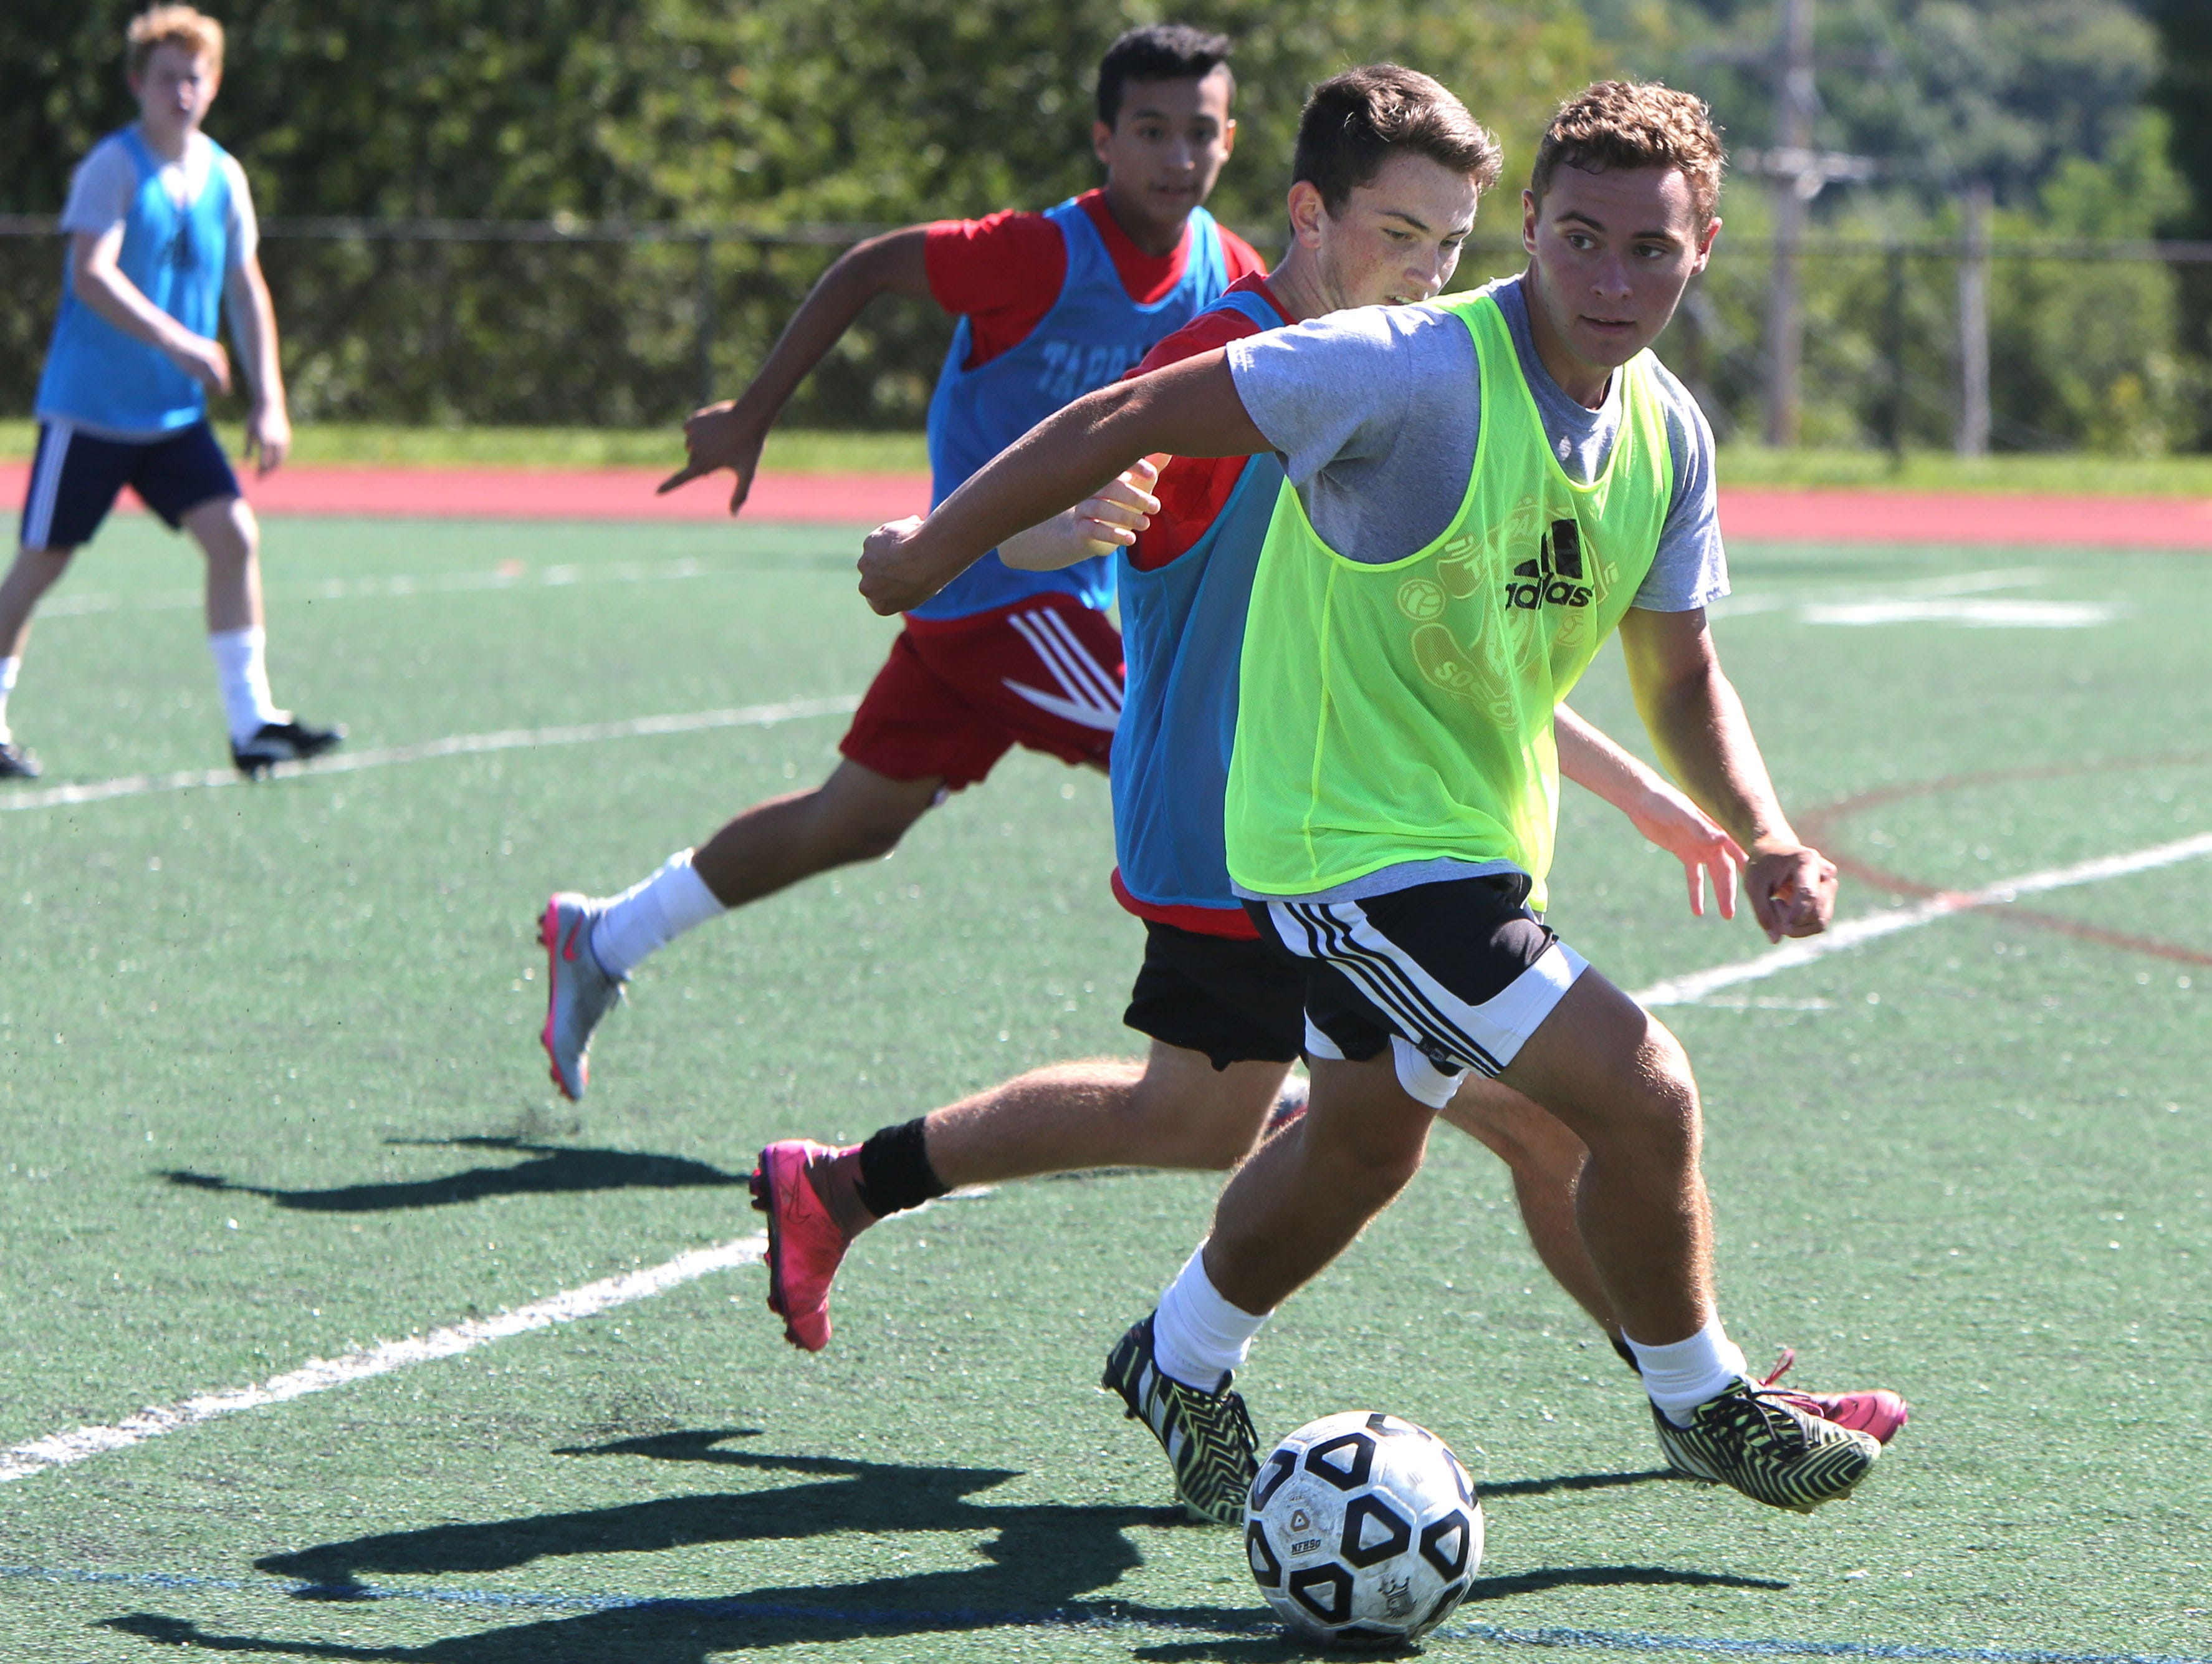 Tappan Zee junior Joe Stahl during the first day of soccer practice at Tappan Zee High School Aug. 22, 2016.